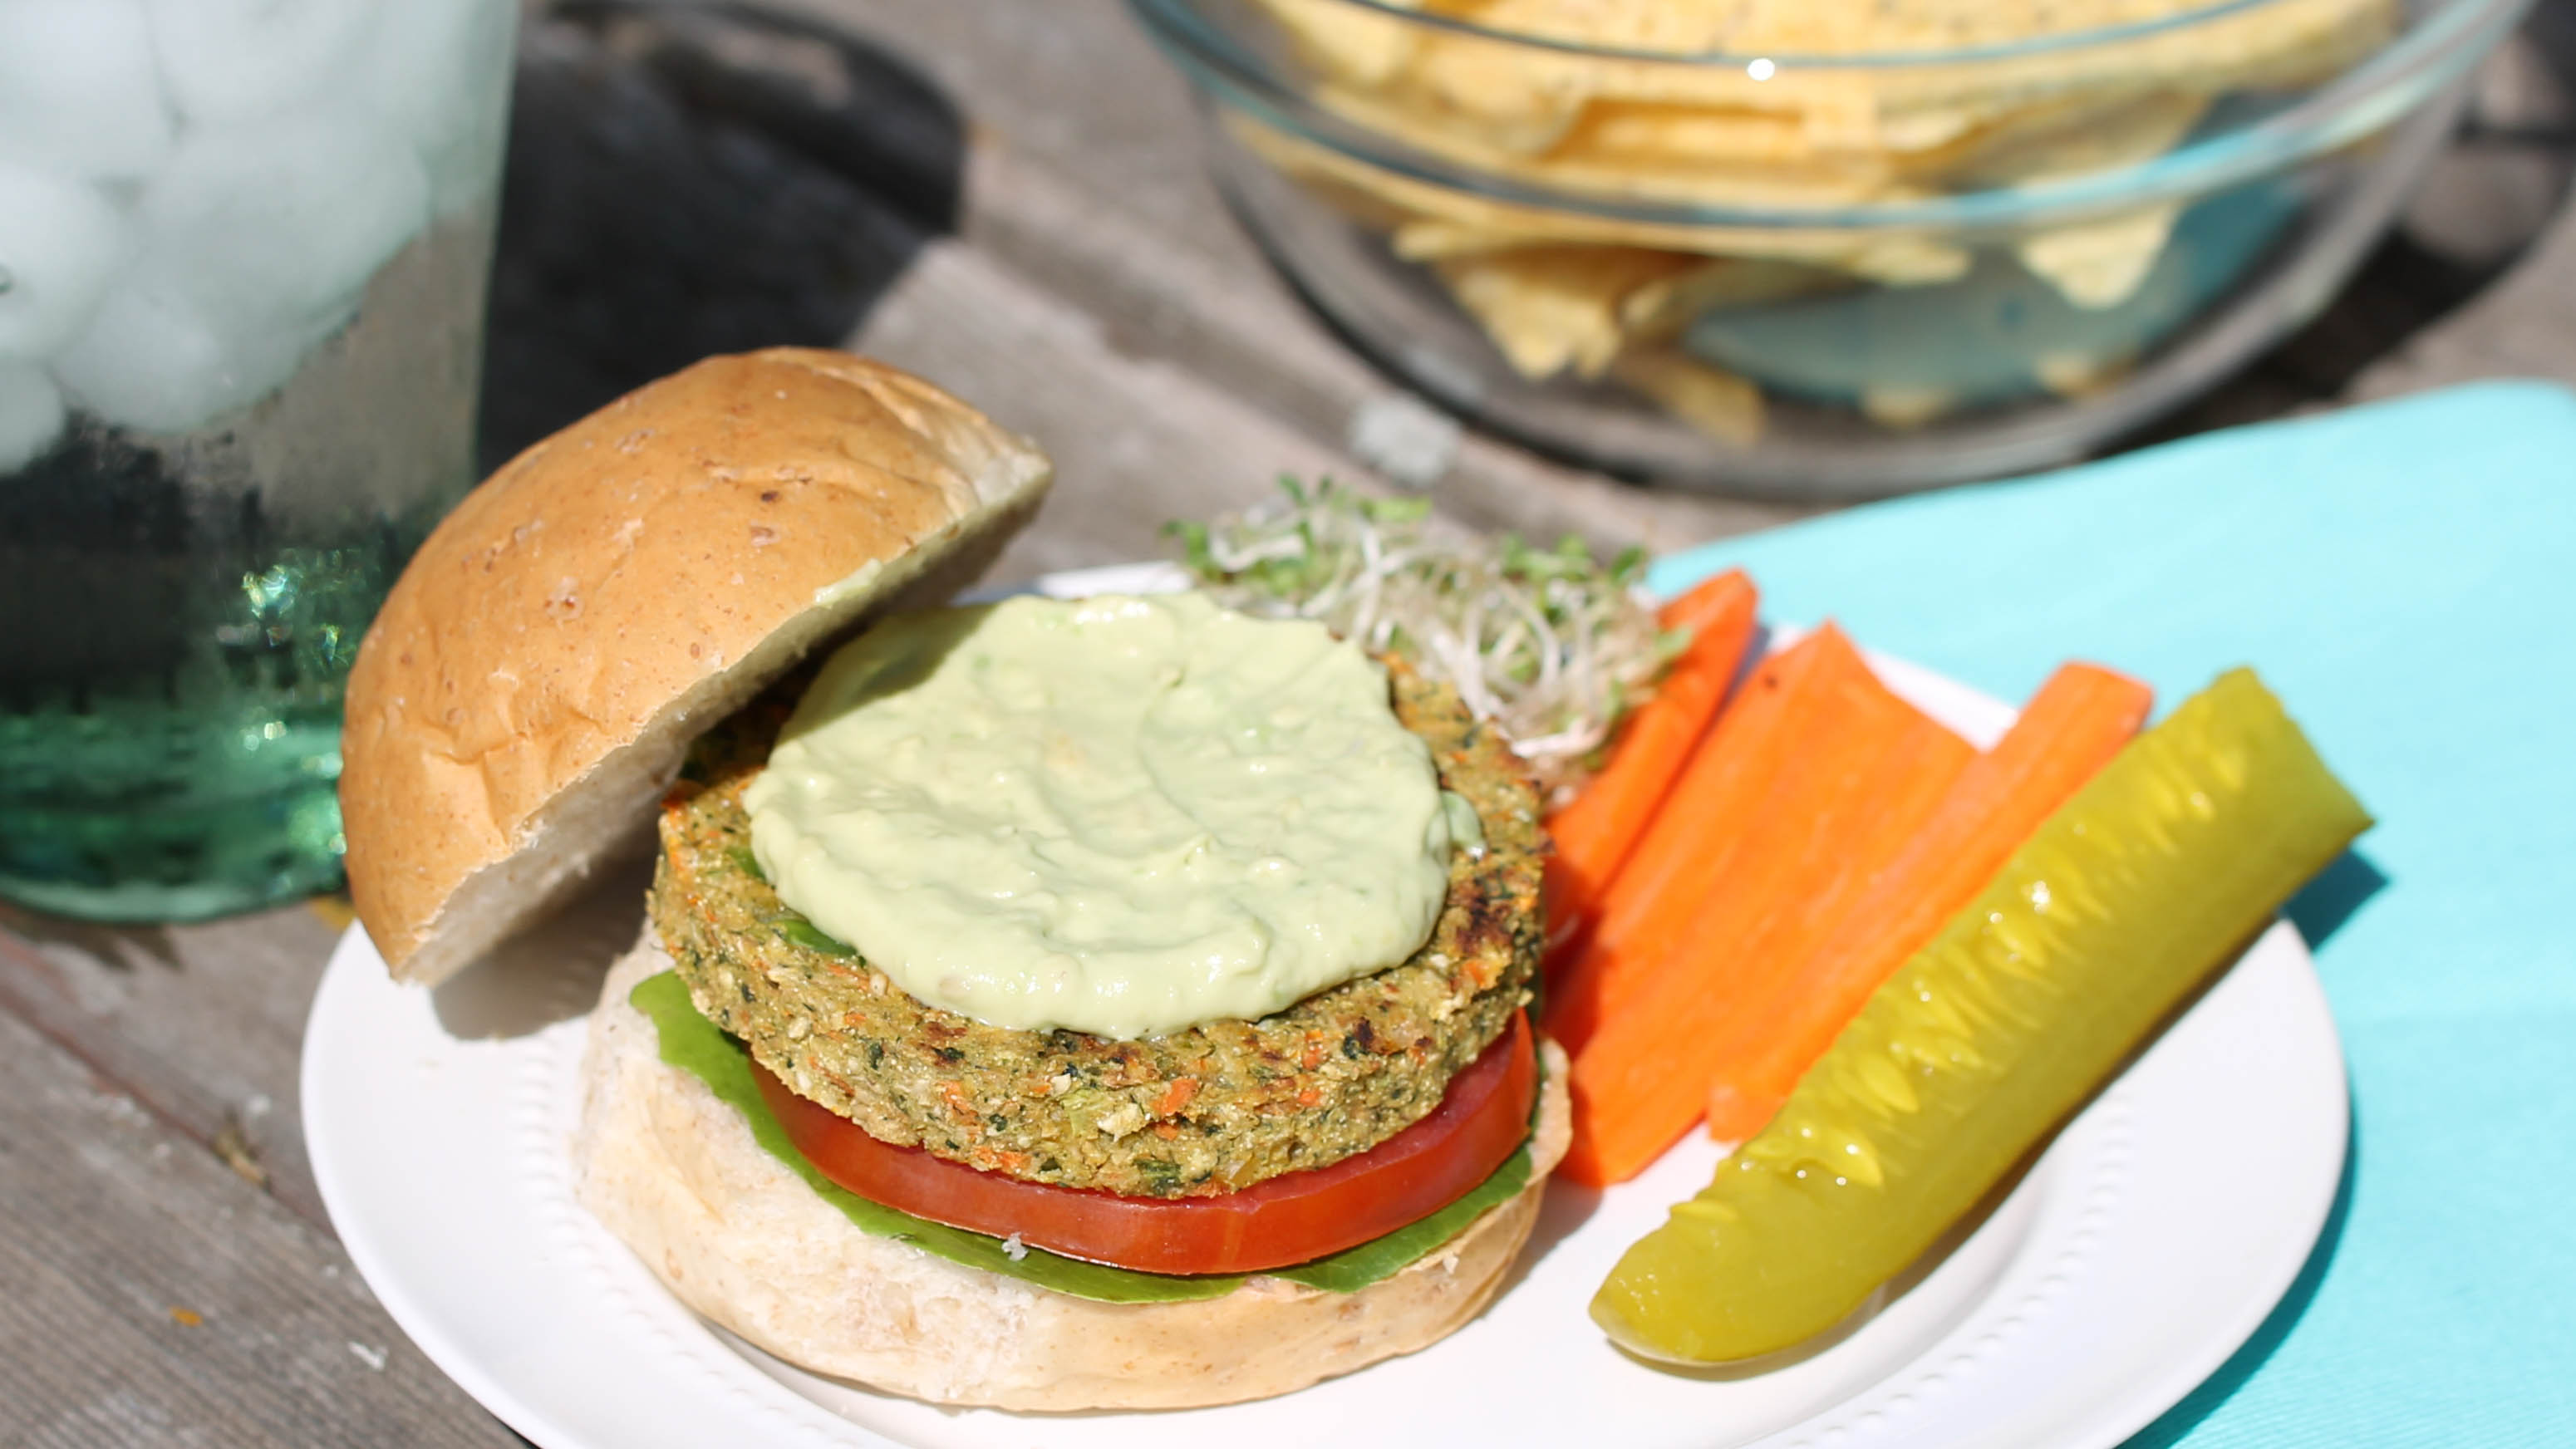 Avocado Spread made with BiPro Whey Protein